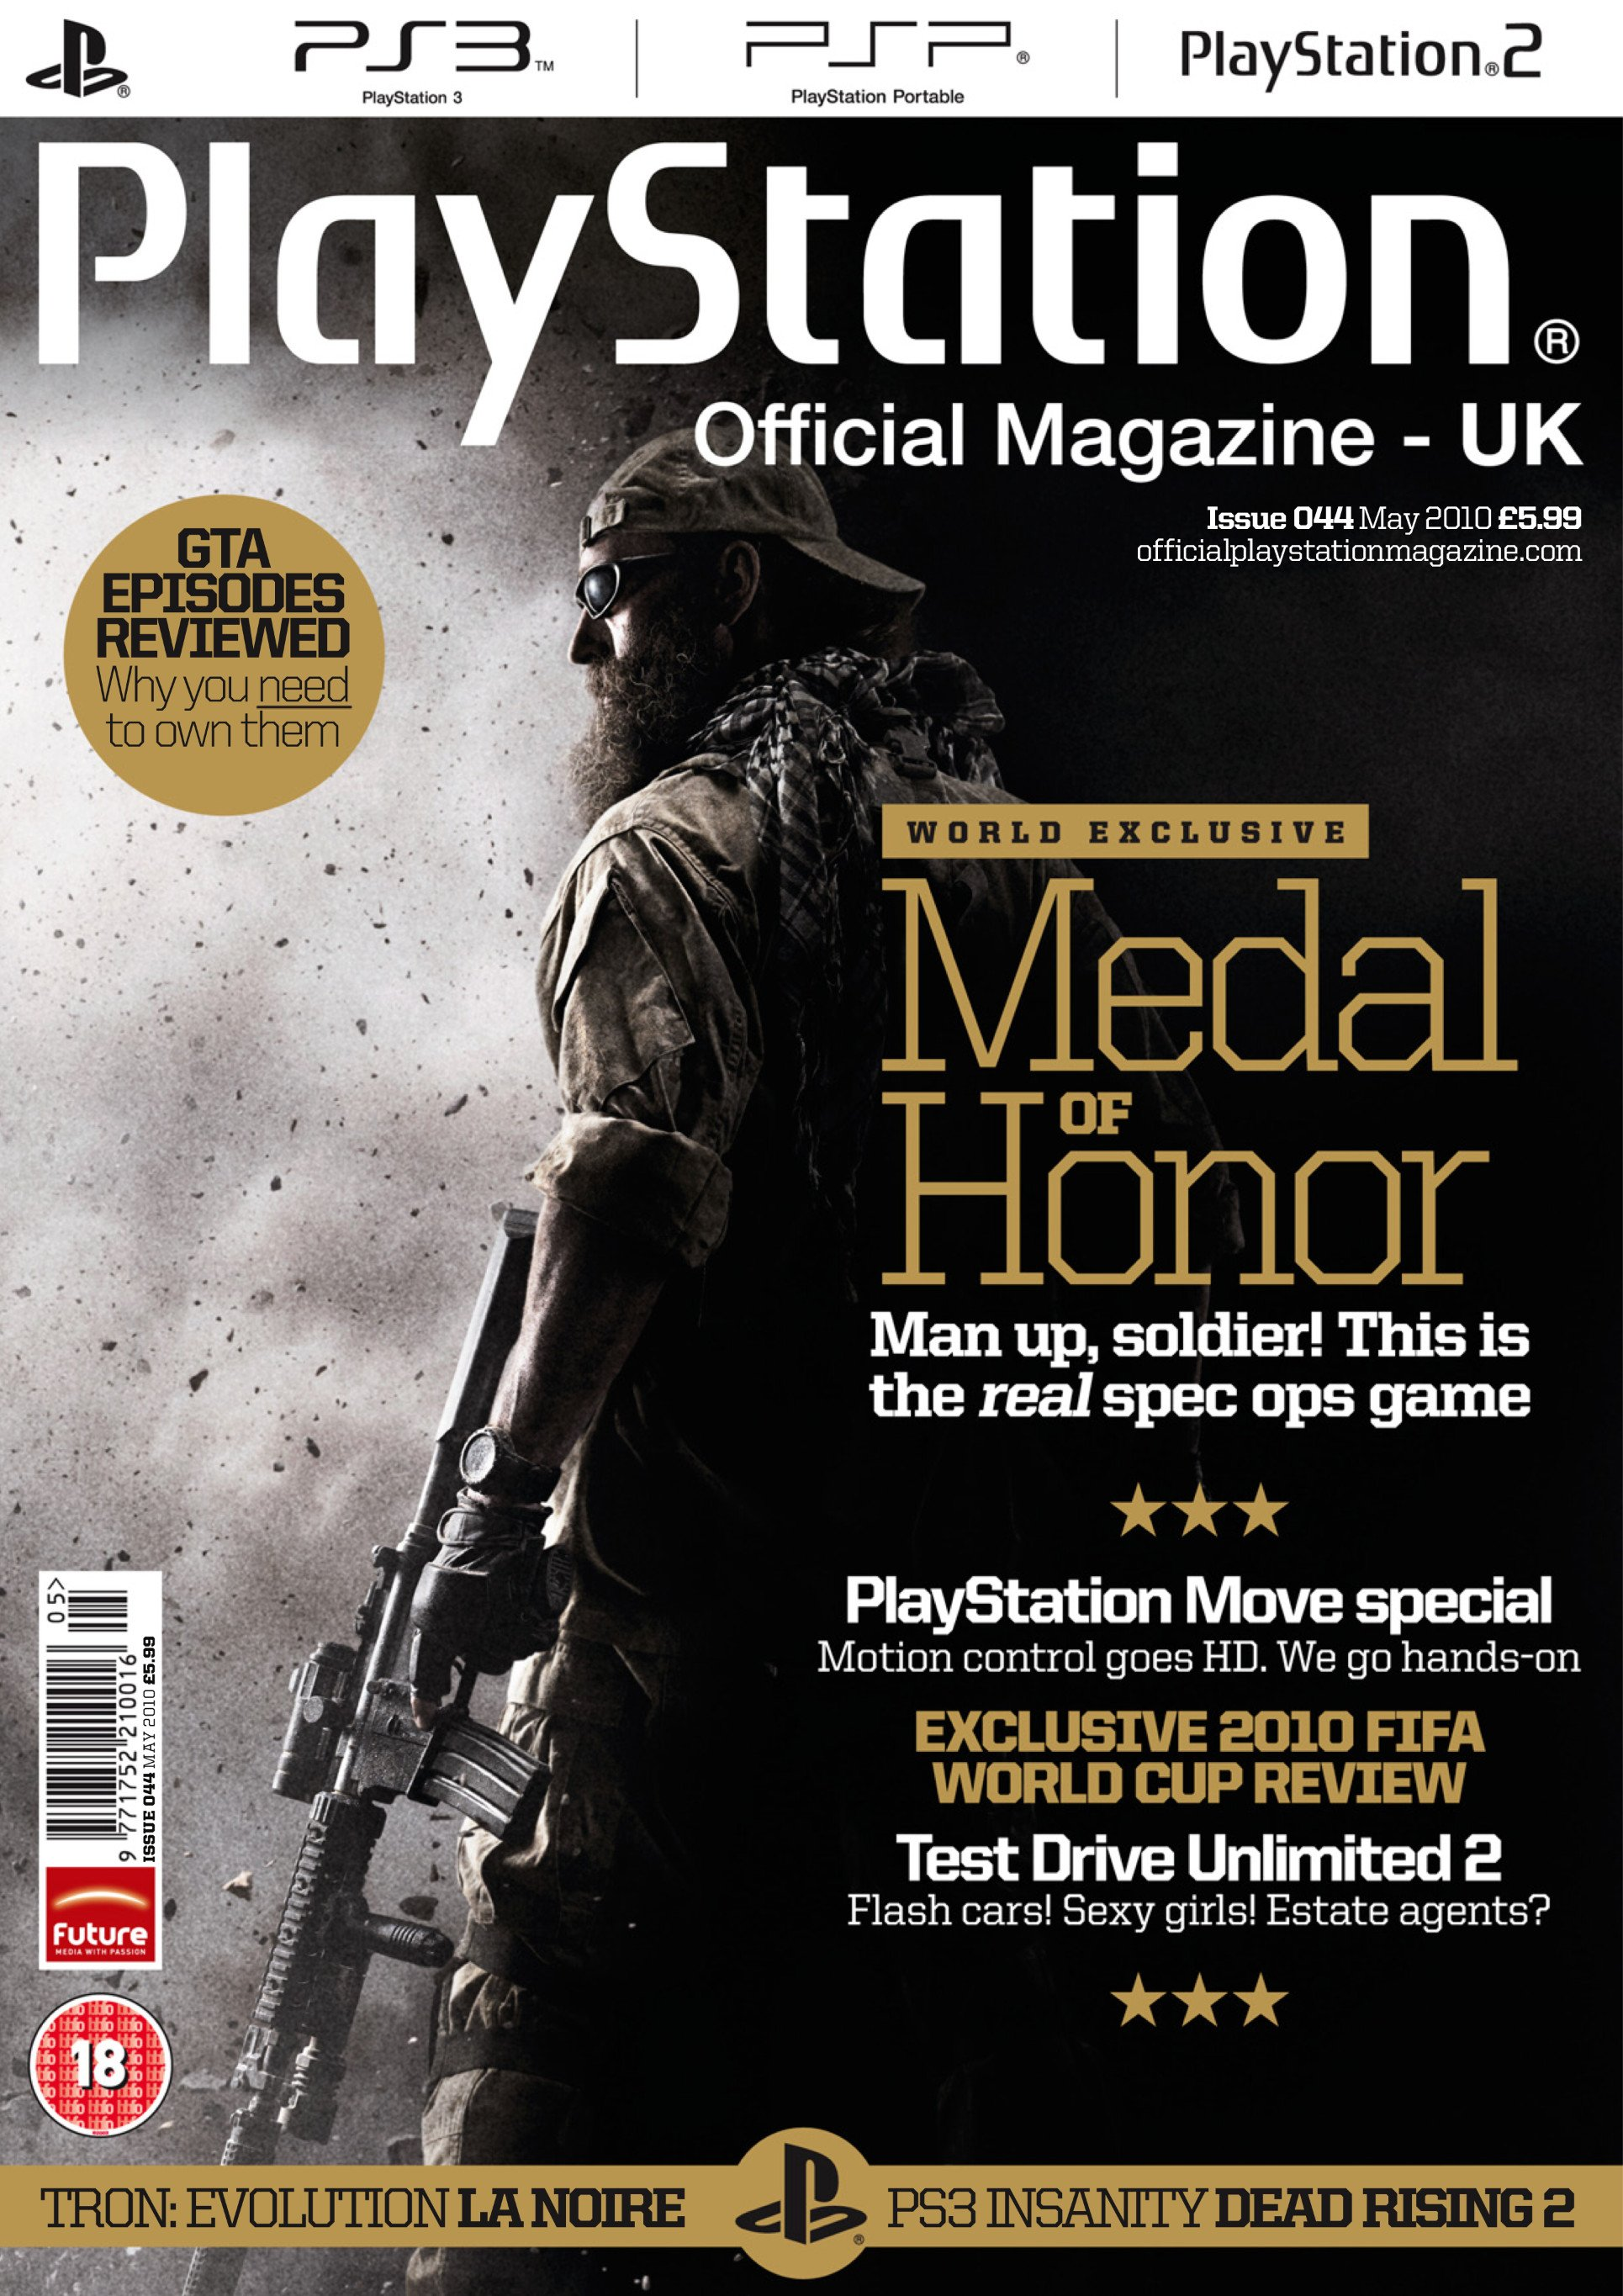 Playstation Official Magazine UK 044 (May 2010)